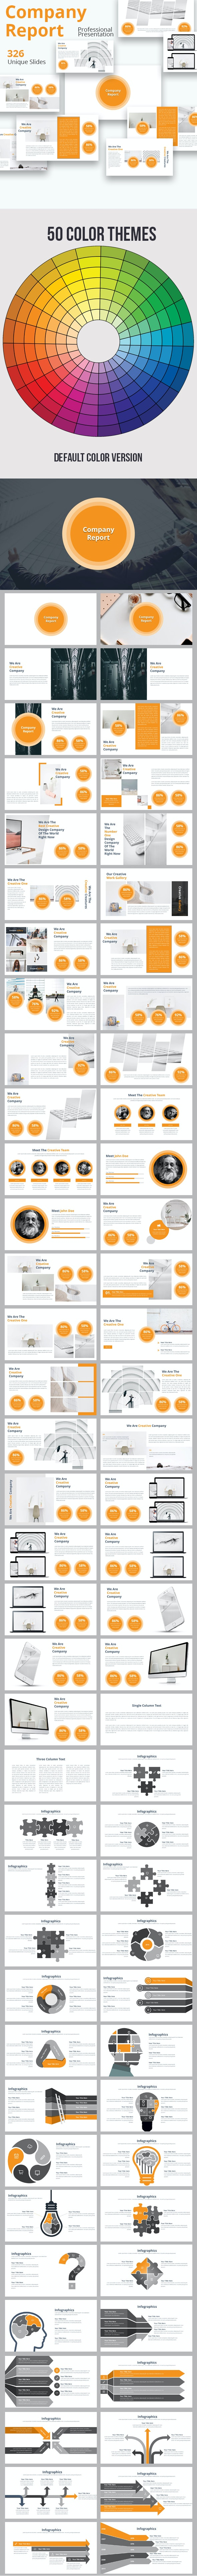 Company Report Powerpoint Presentation Template - Business PowerPoint Templates